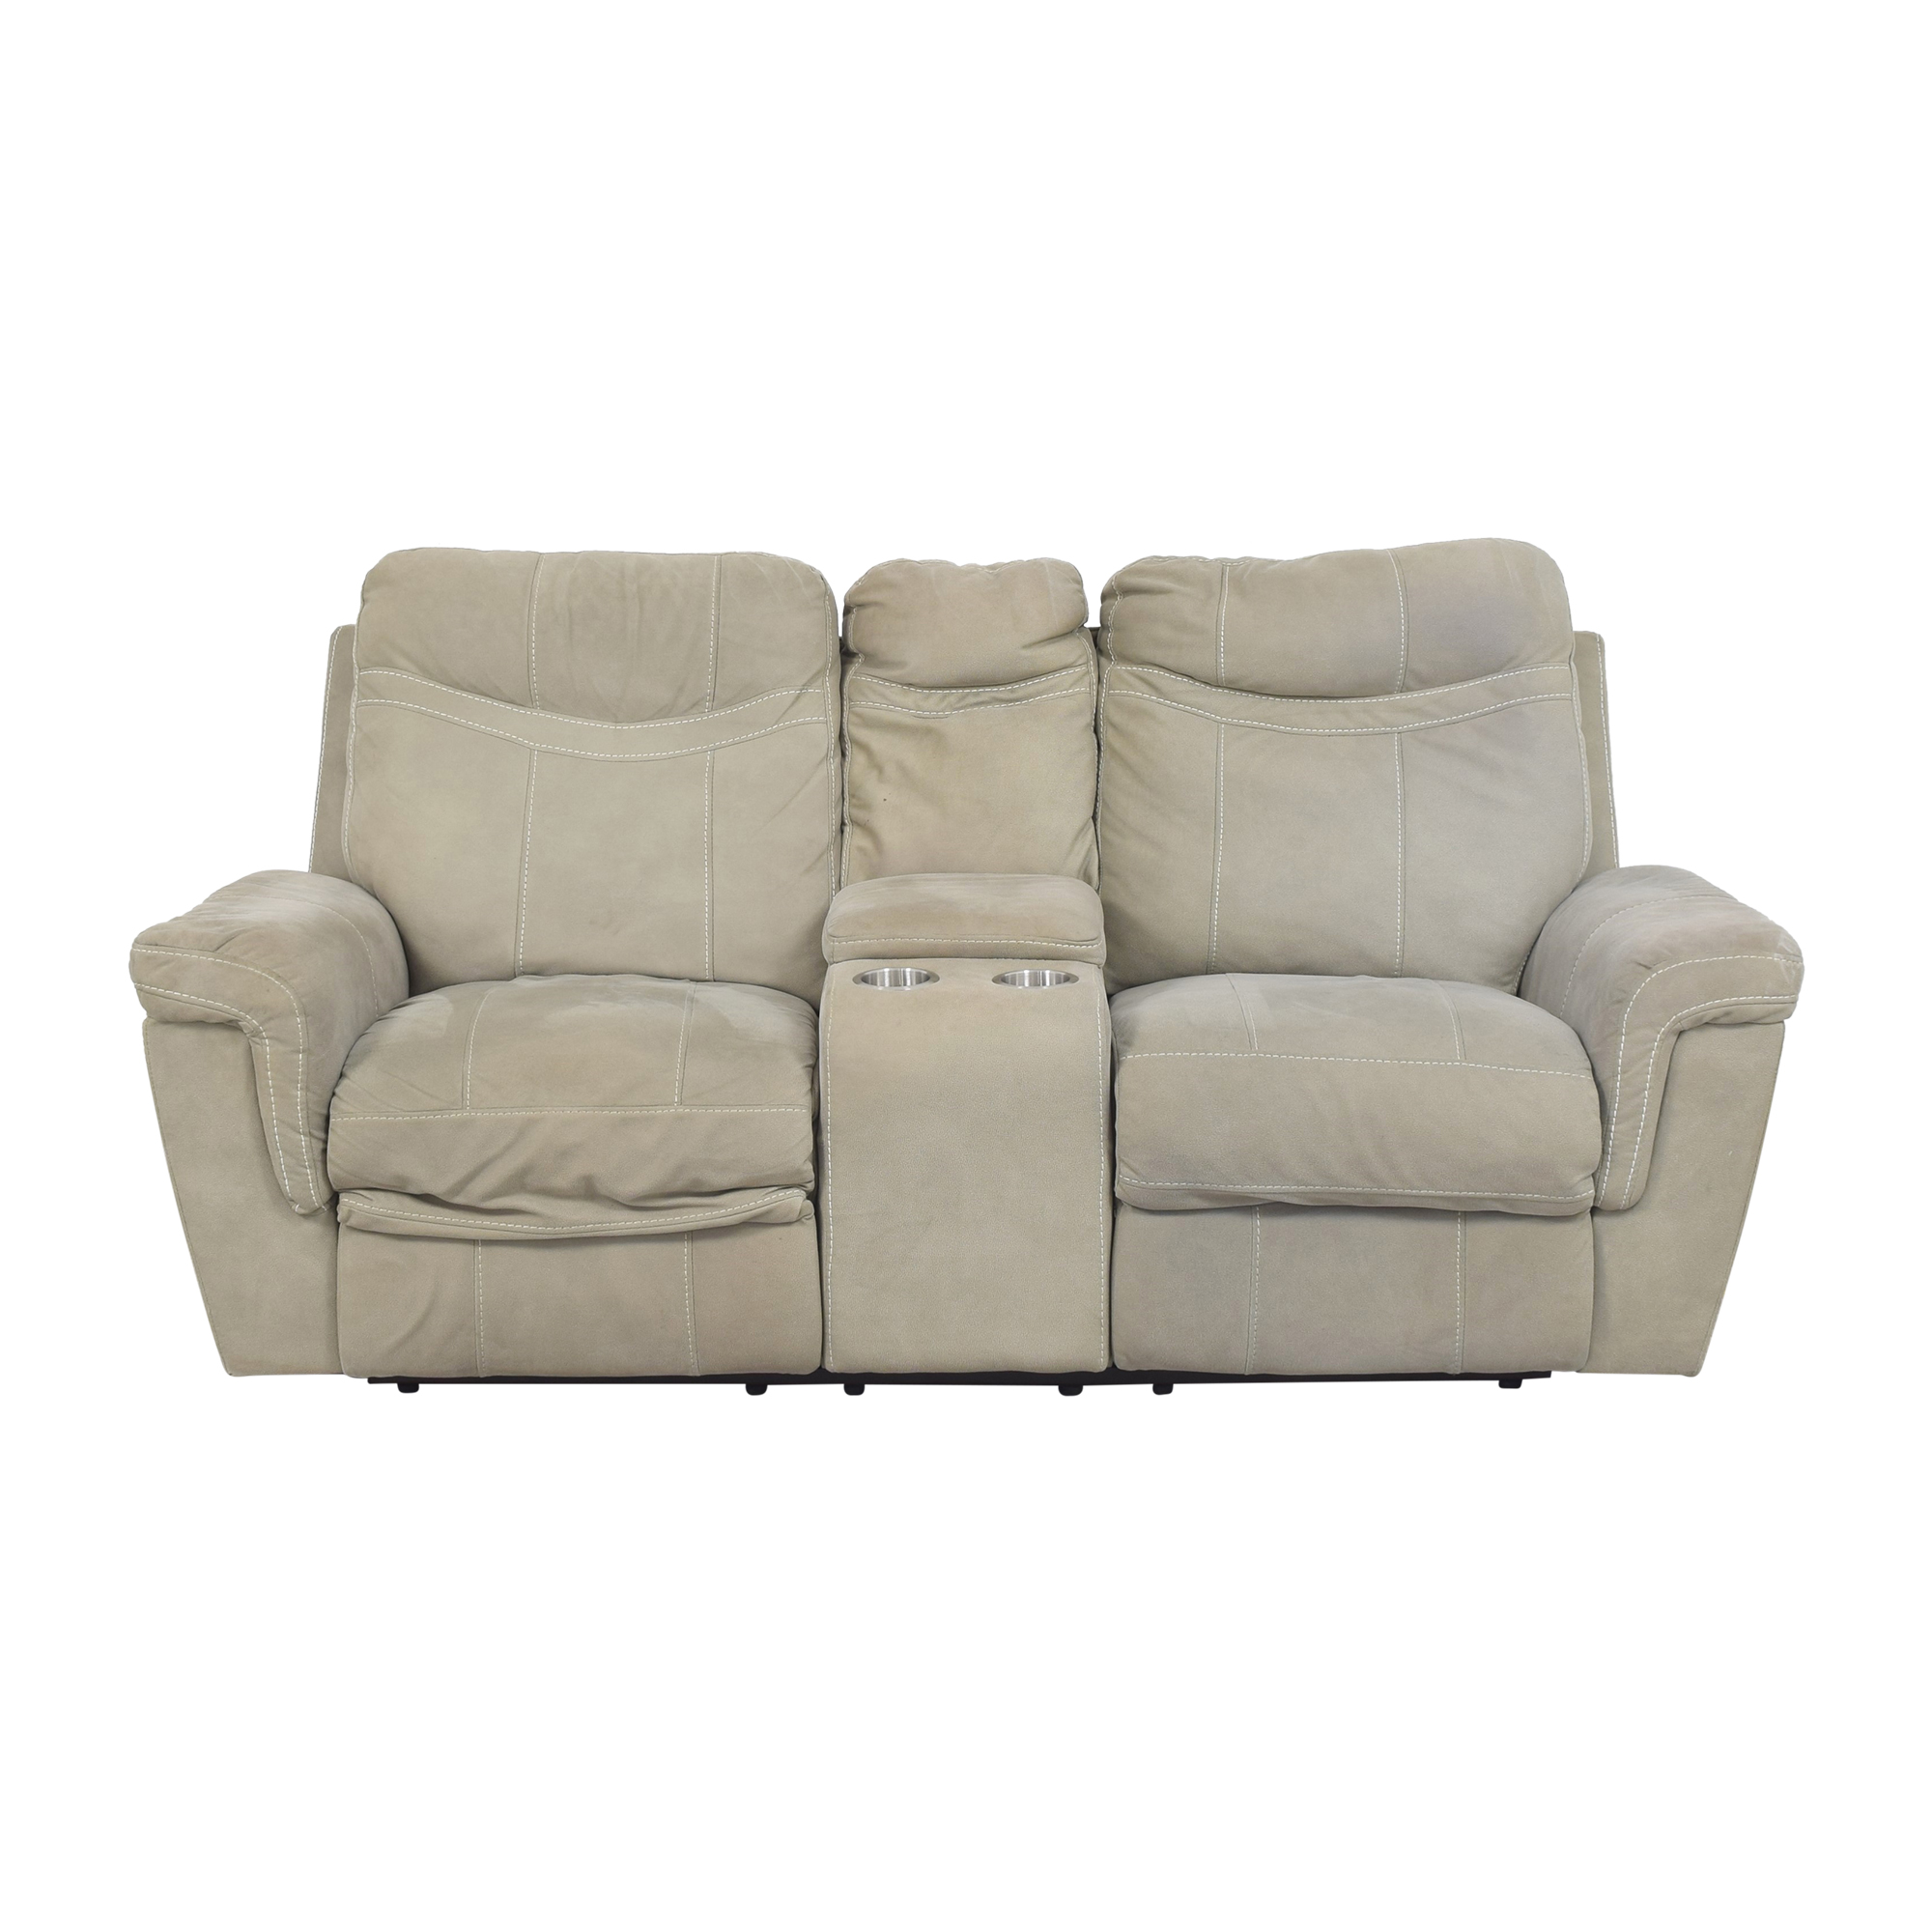 Standard Furniture Standard Furniture Power Reclining Sofa price